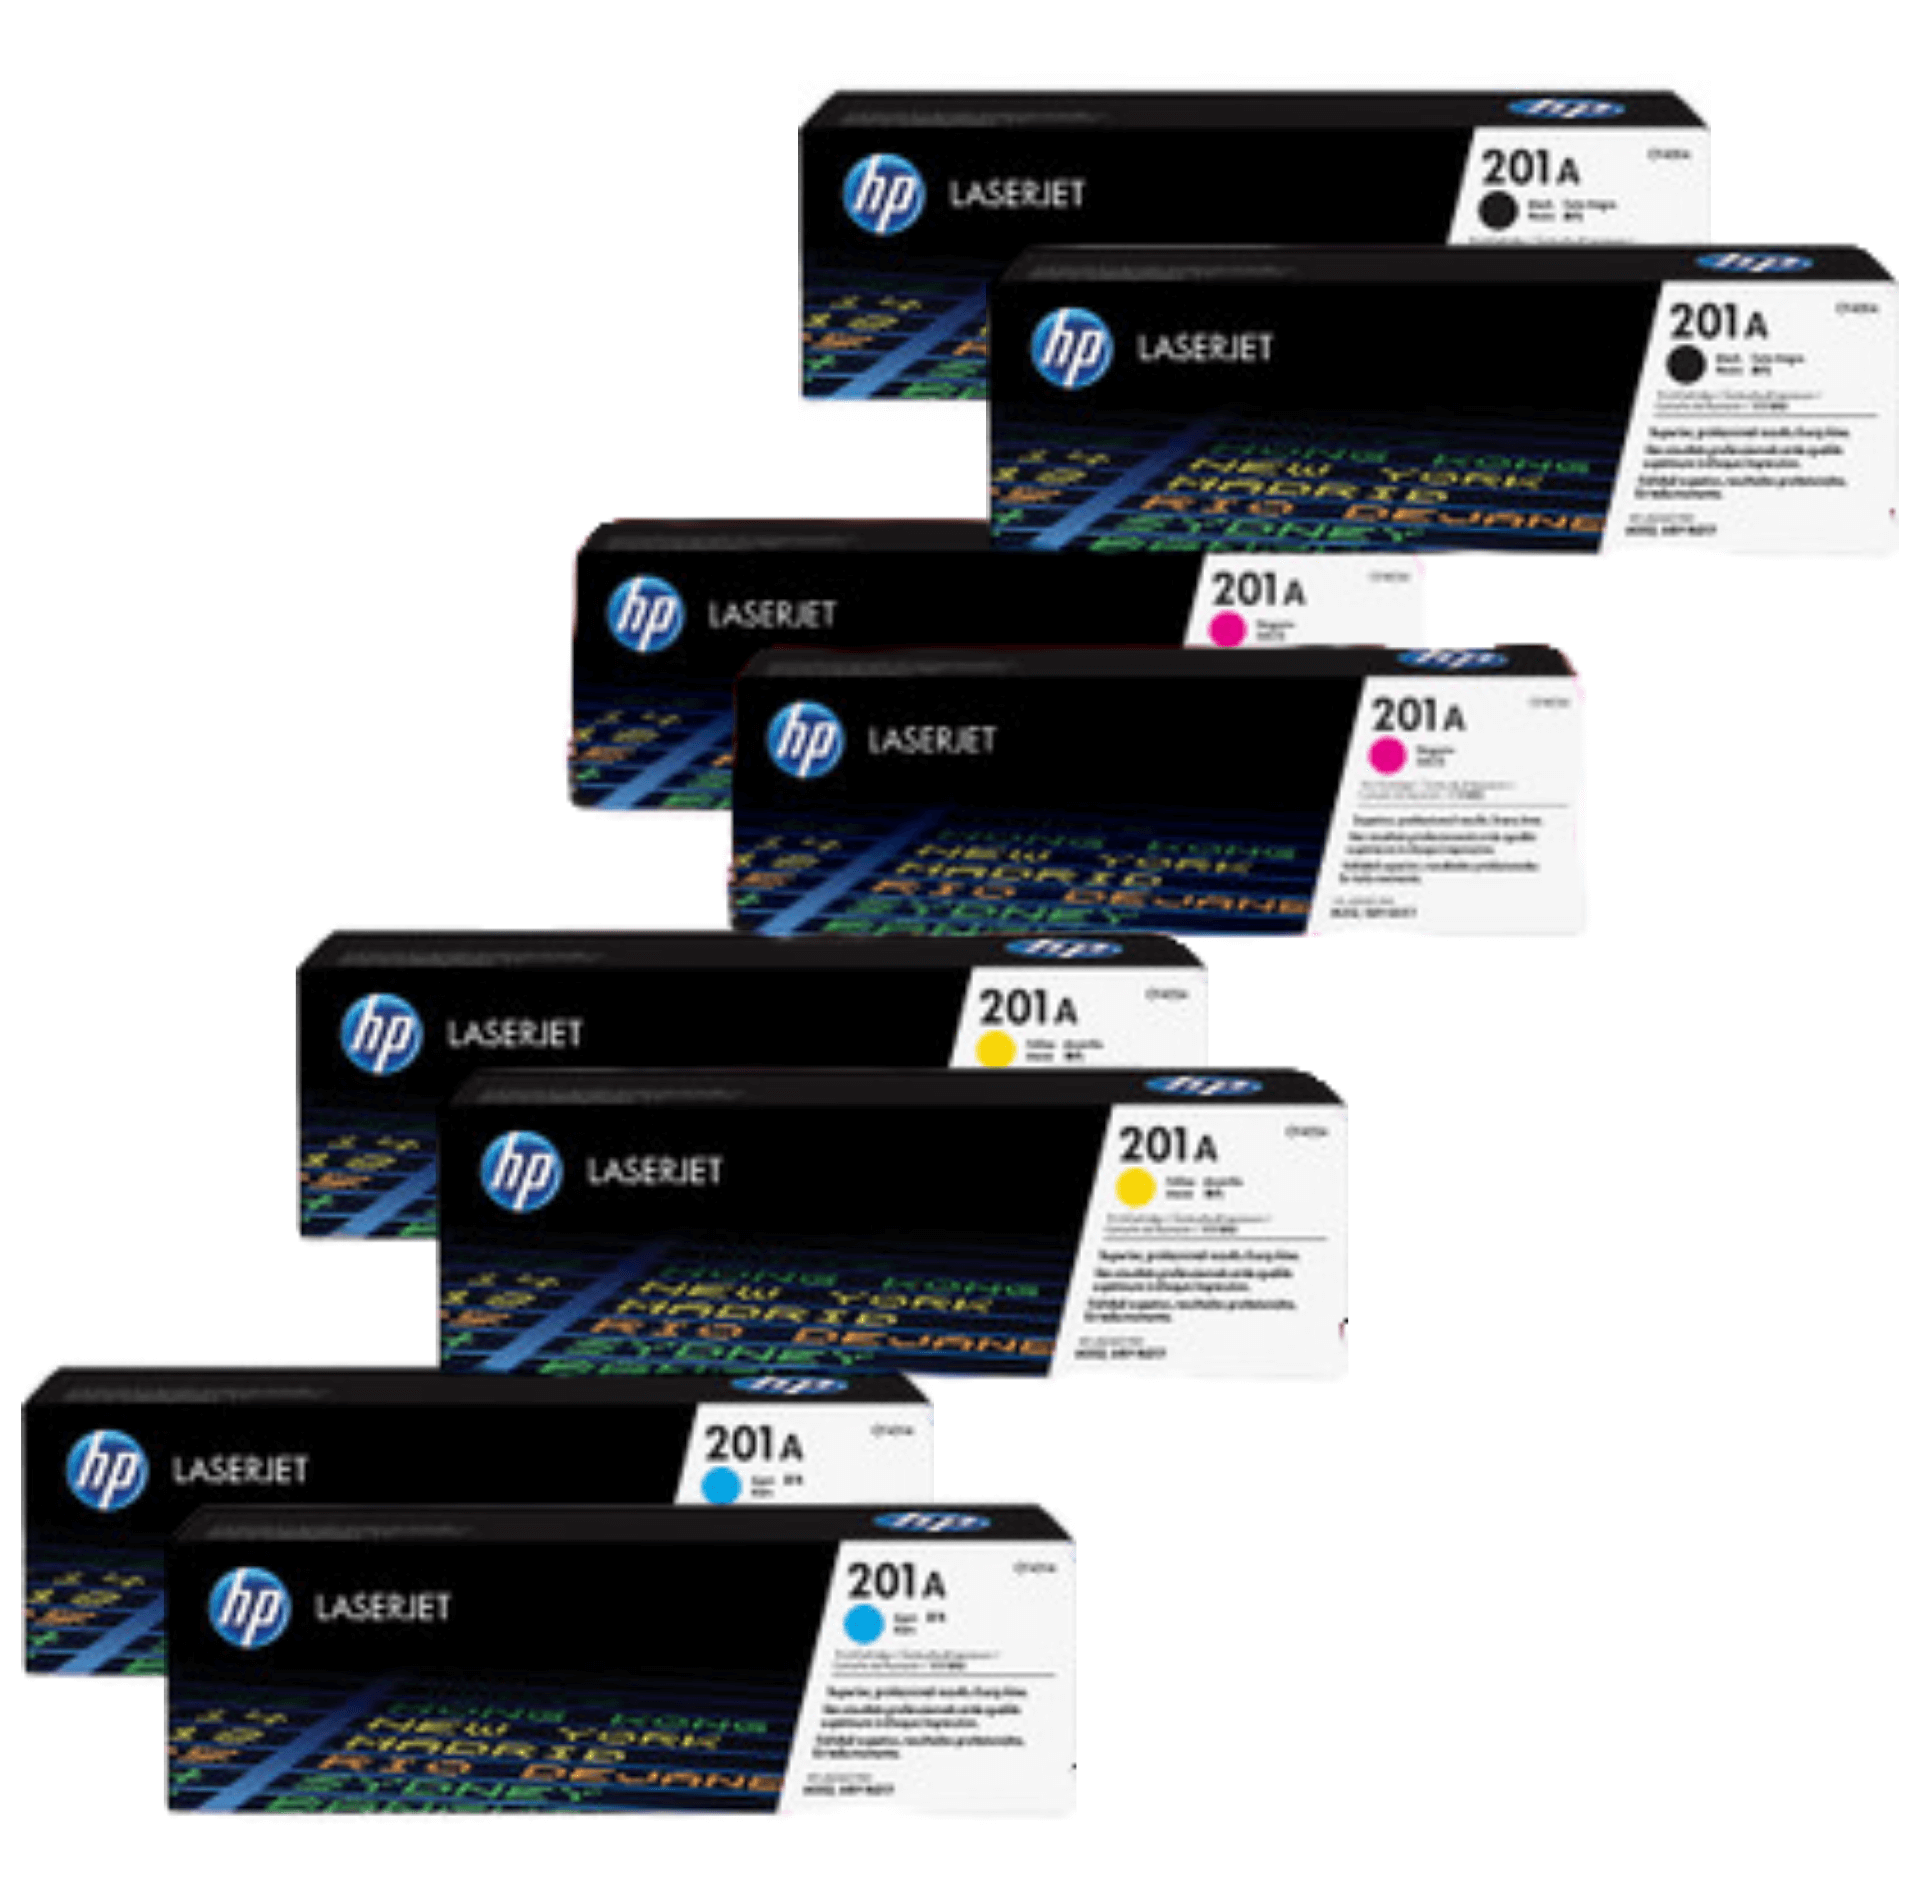 HP 201A Toner Cartridges Value Pack - Includes: [2 x Black, Cyan, Magenta, Yellow]